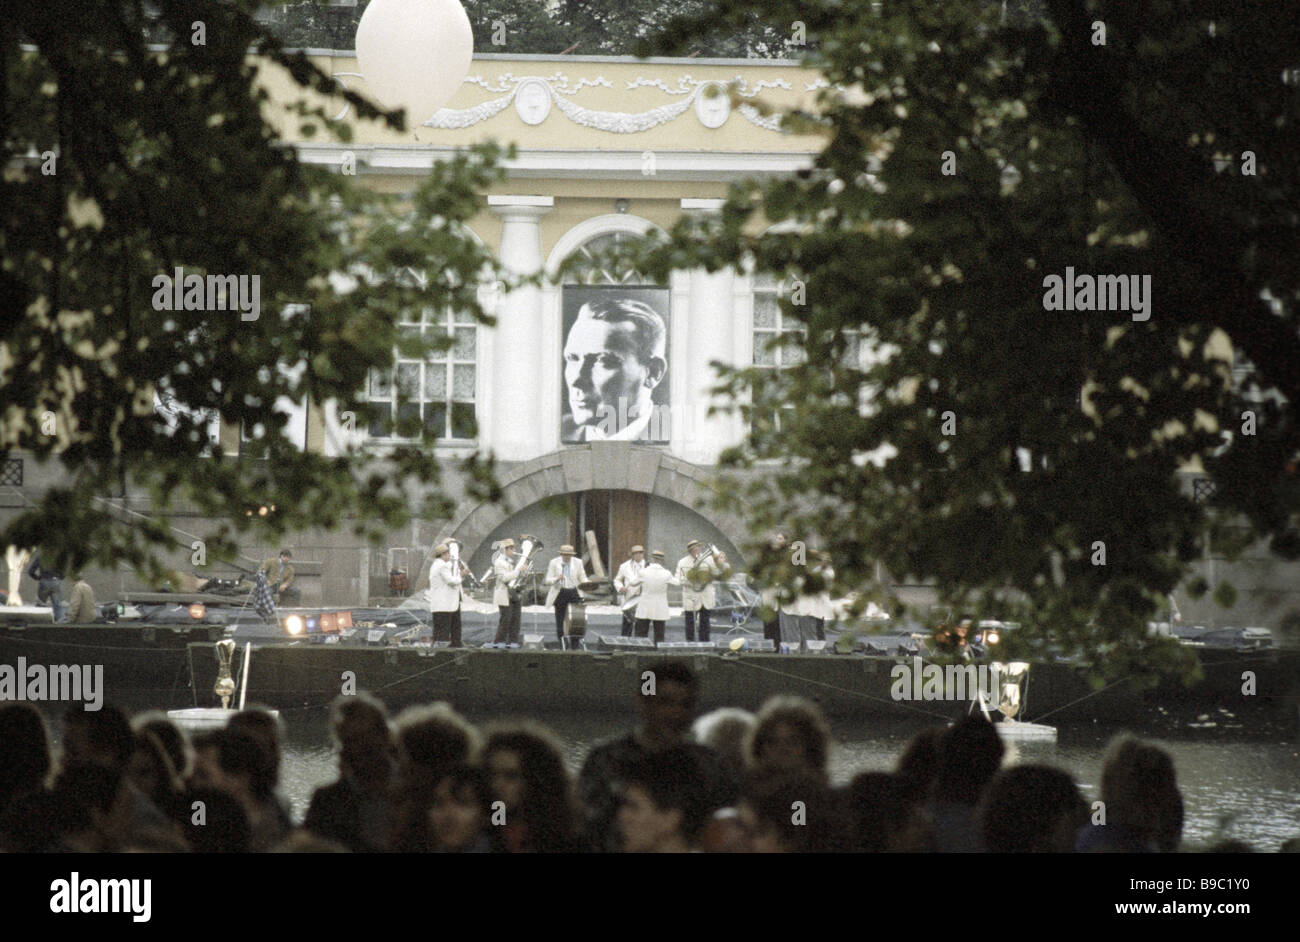 Celebrating the birth centennial of writer Mikhail Bulgakov on Patriarch s Ponds - Stock Image